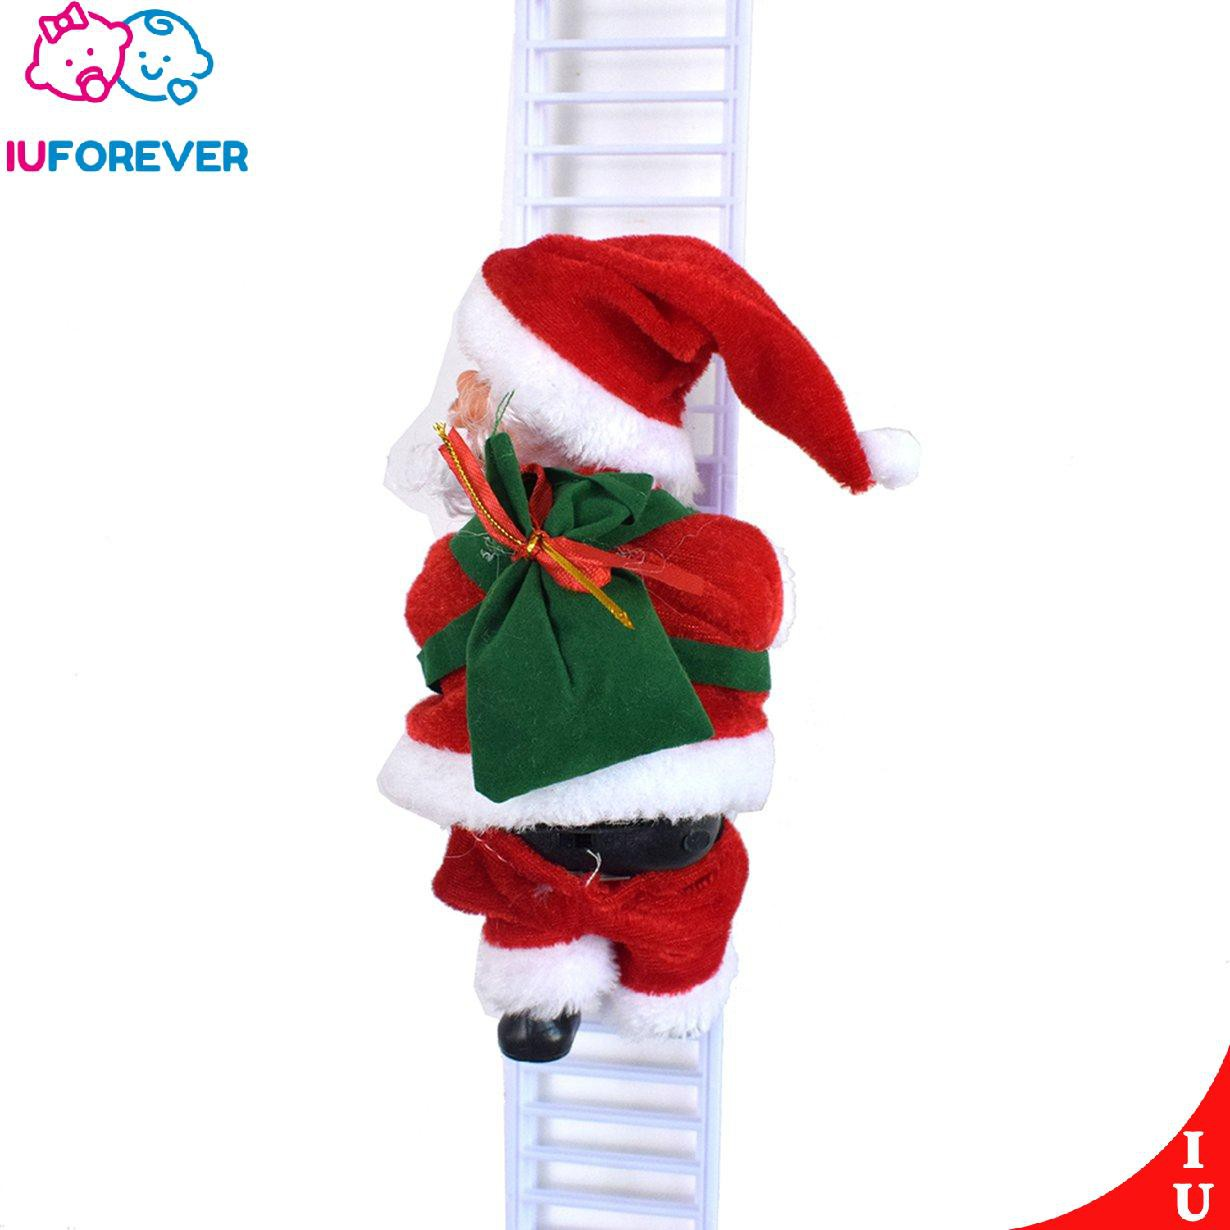 Iu1225 Electric Climbing Ladder Santa Claus Christmas Figurine Ornament Holiday Party Shopee Philippines